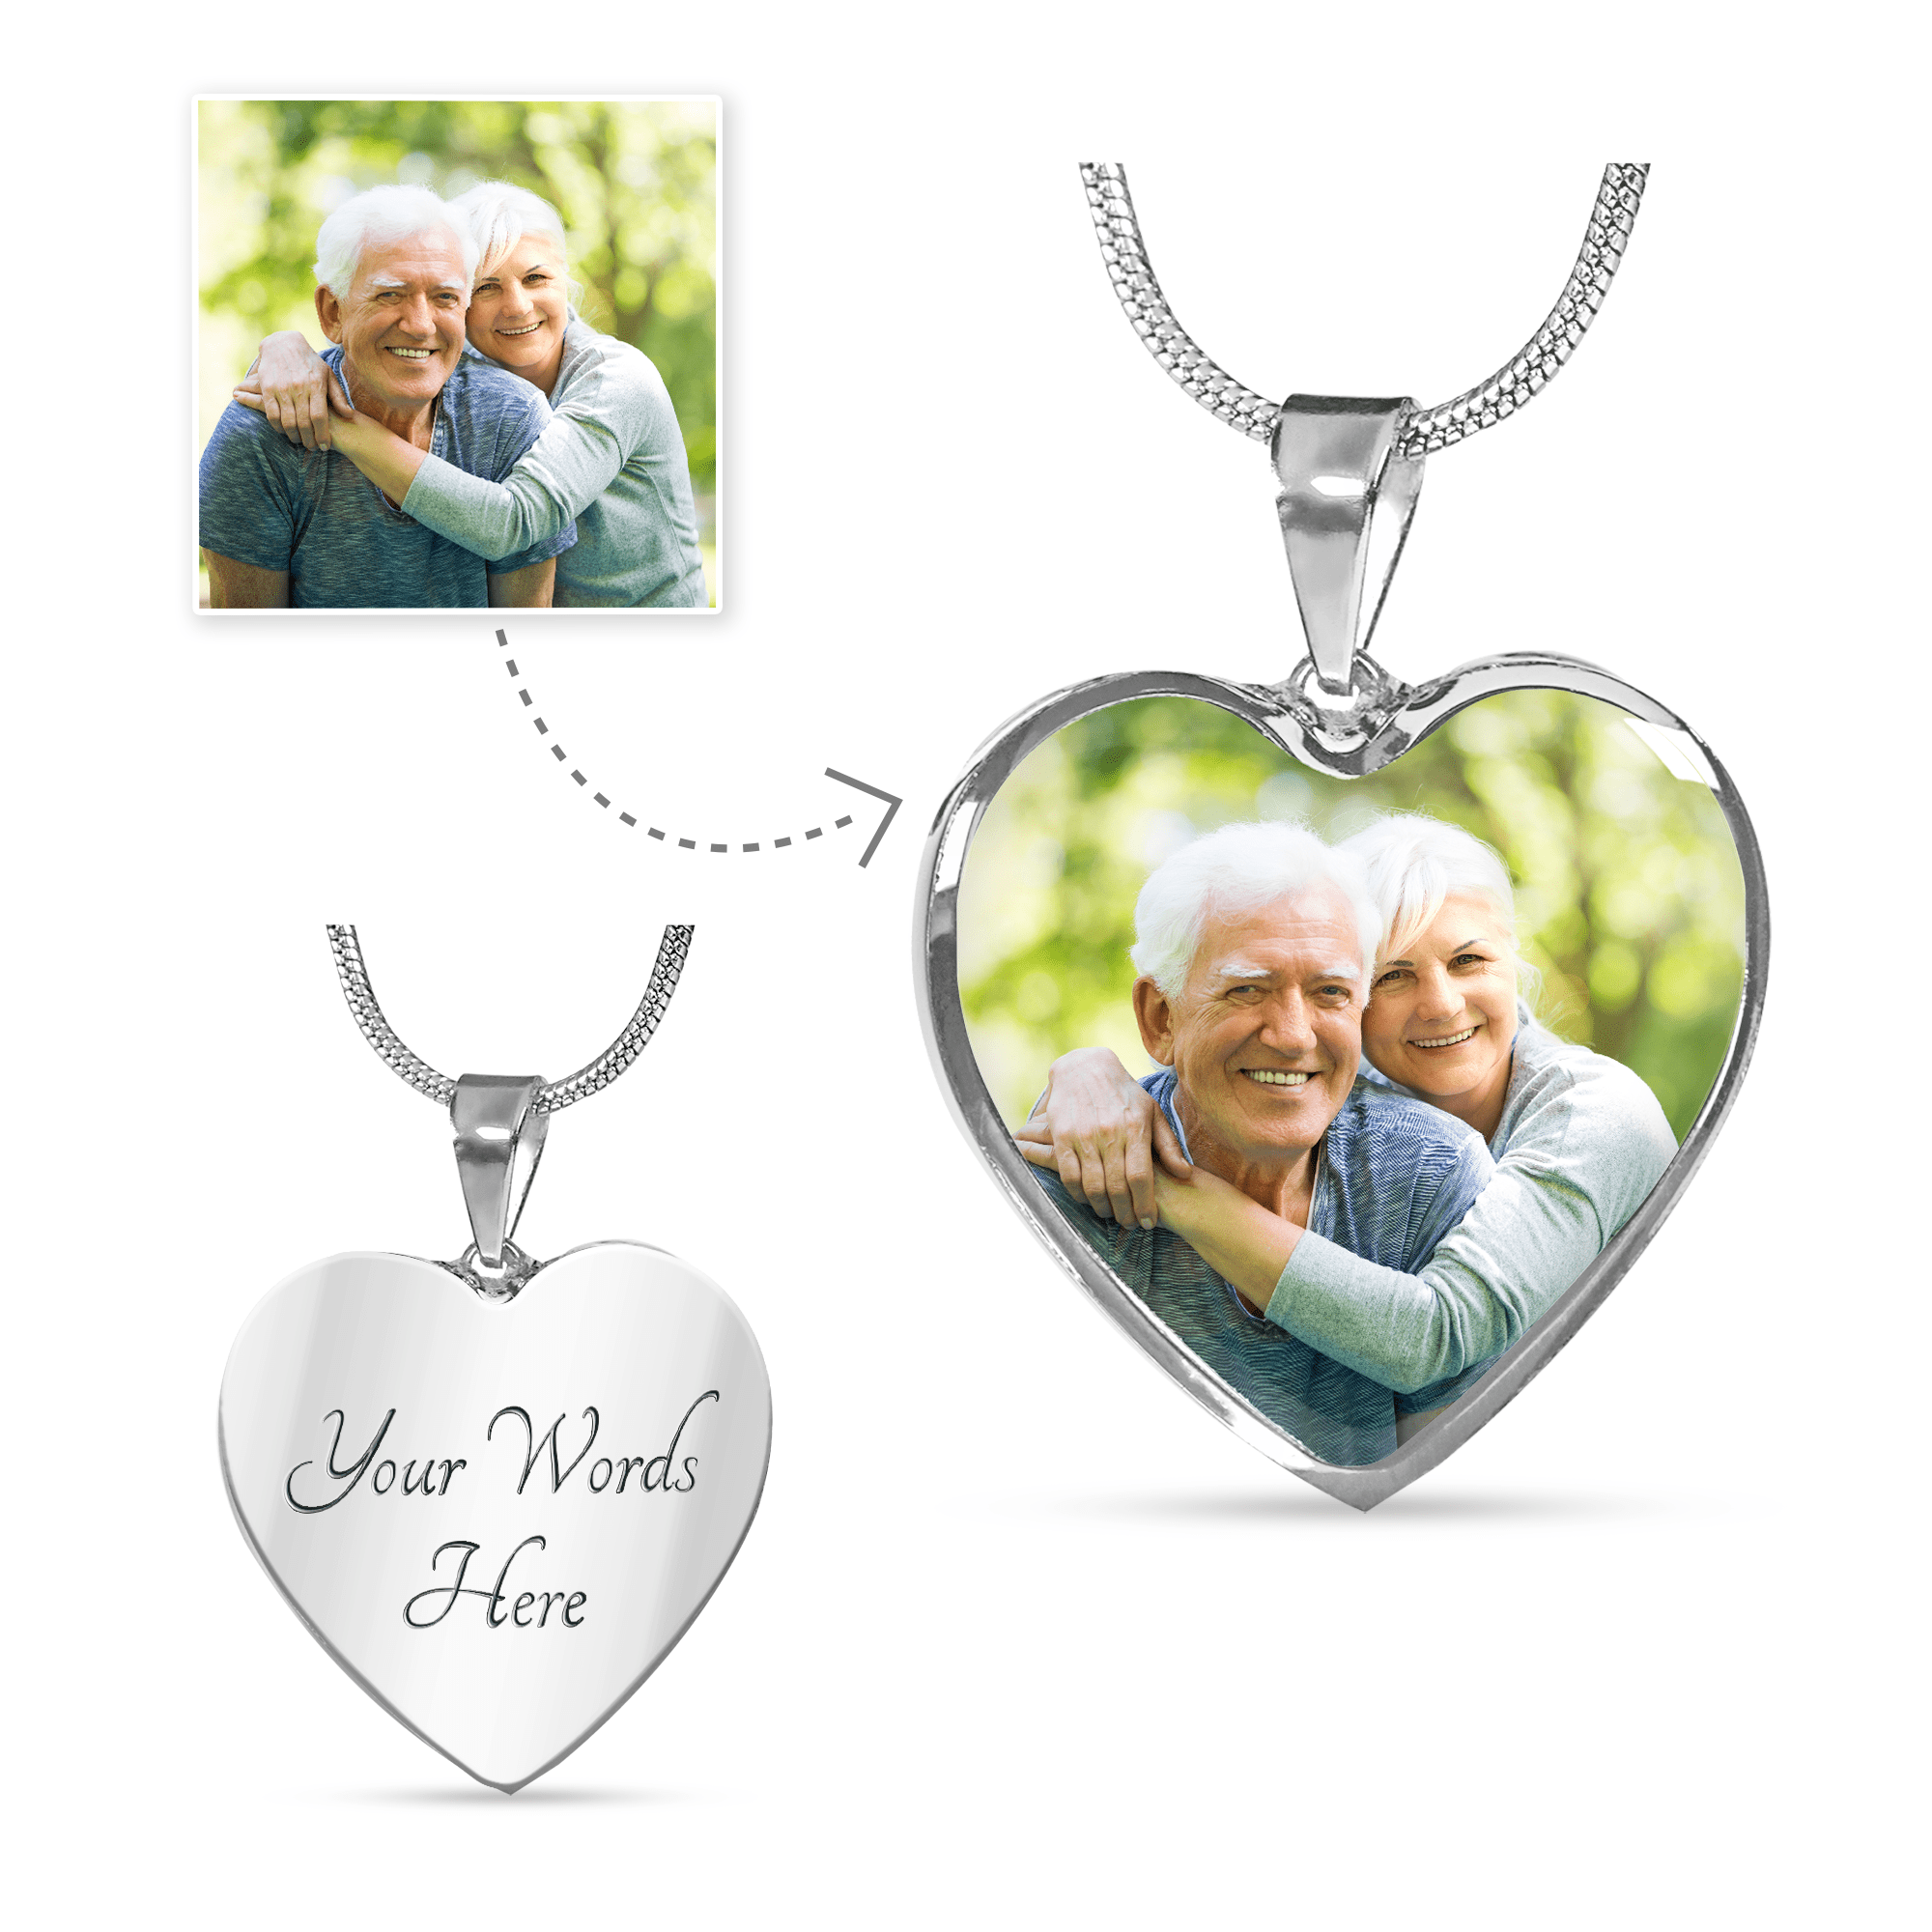 """IN MEMORY OF..."" NECKLACE  - CUSTOM PHOTO & ENGRAVING - BEST SELLING PERSONALIZED GIFT - HEART CHARM"